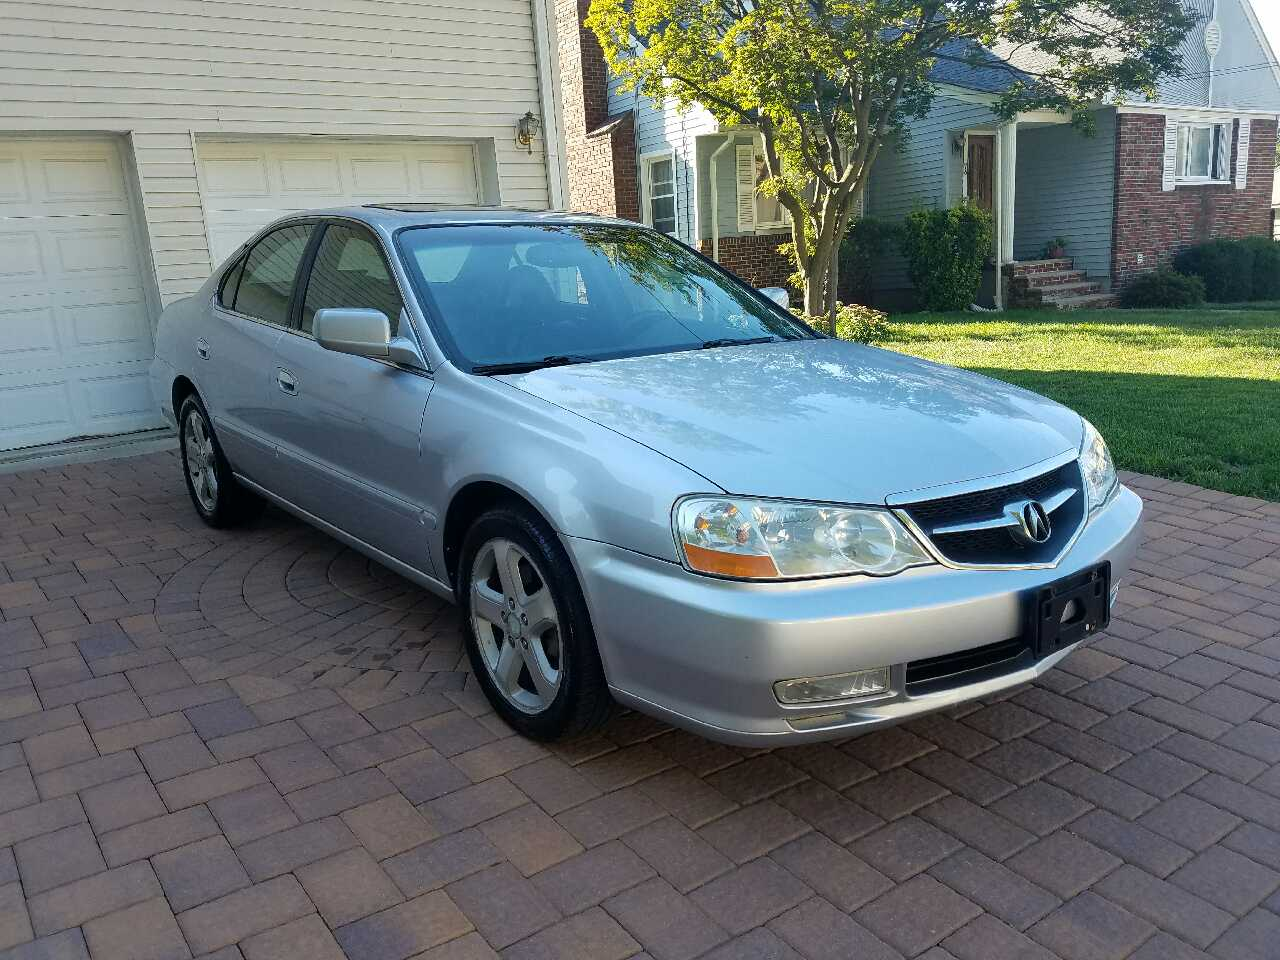 letgo 2002 acura tl type s with 185k miles in garfield nj. Black Bedroom Furniture Sets. Home Design Ideas